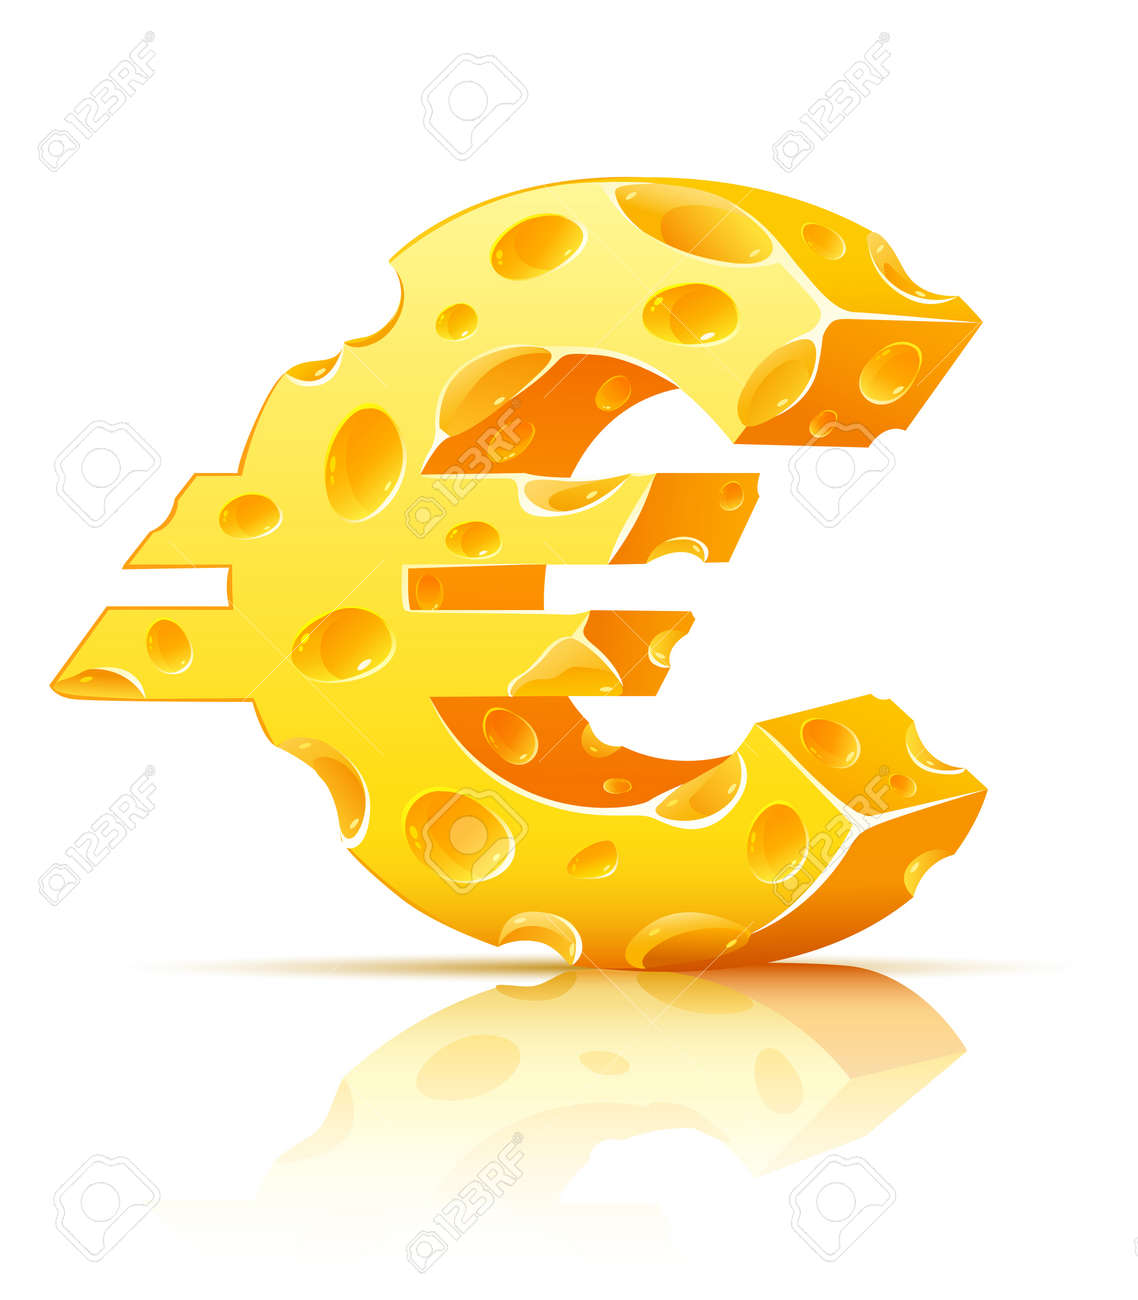 euro currency sign made of yellow porous cheese with holes - vector illustration Stock Vector - 5471491